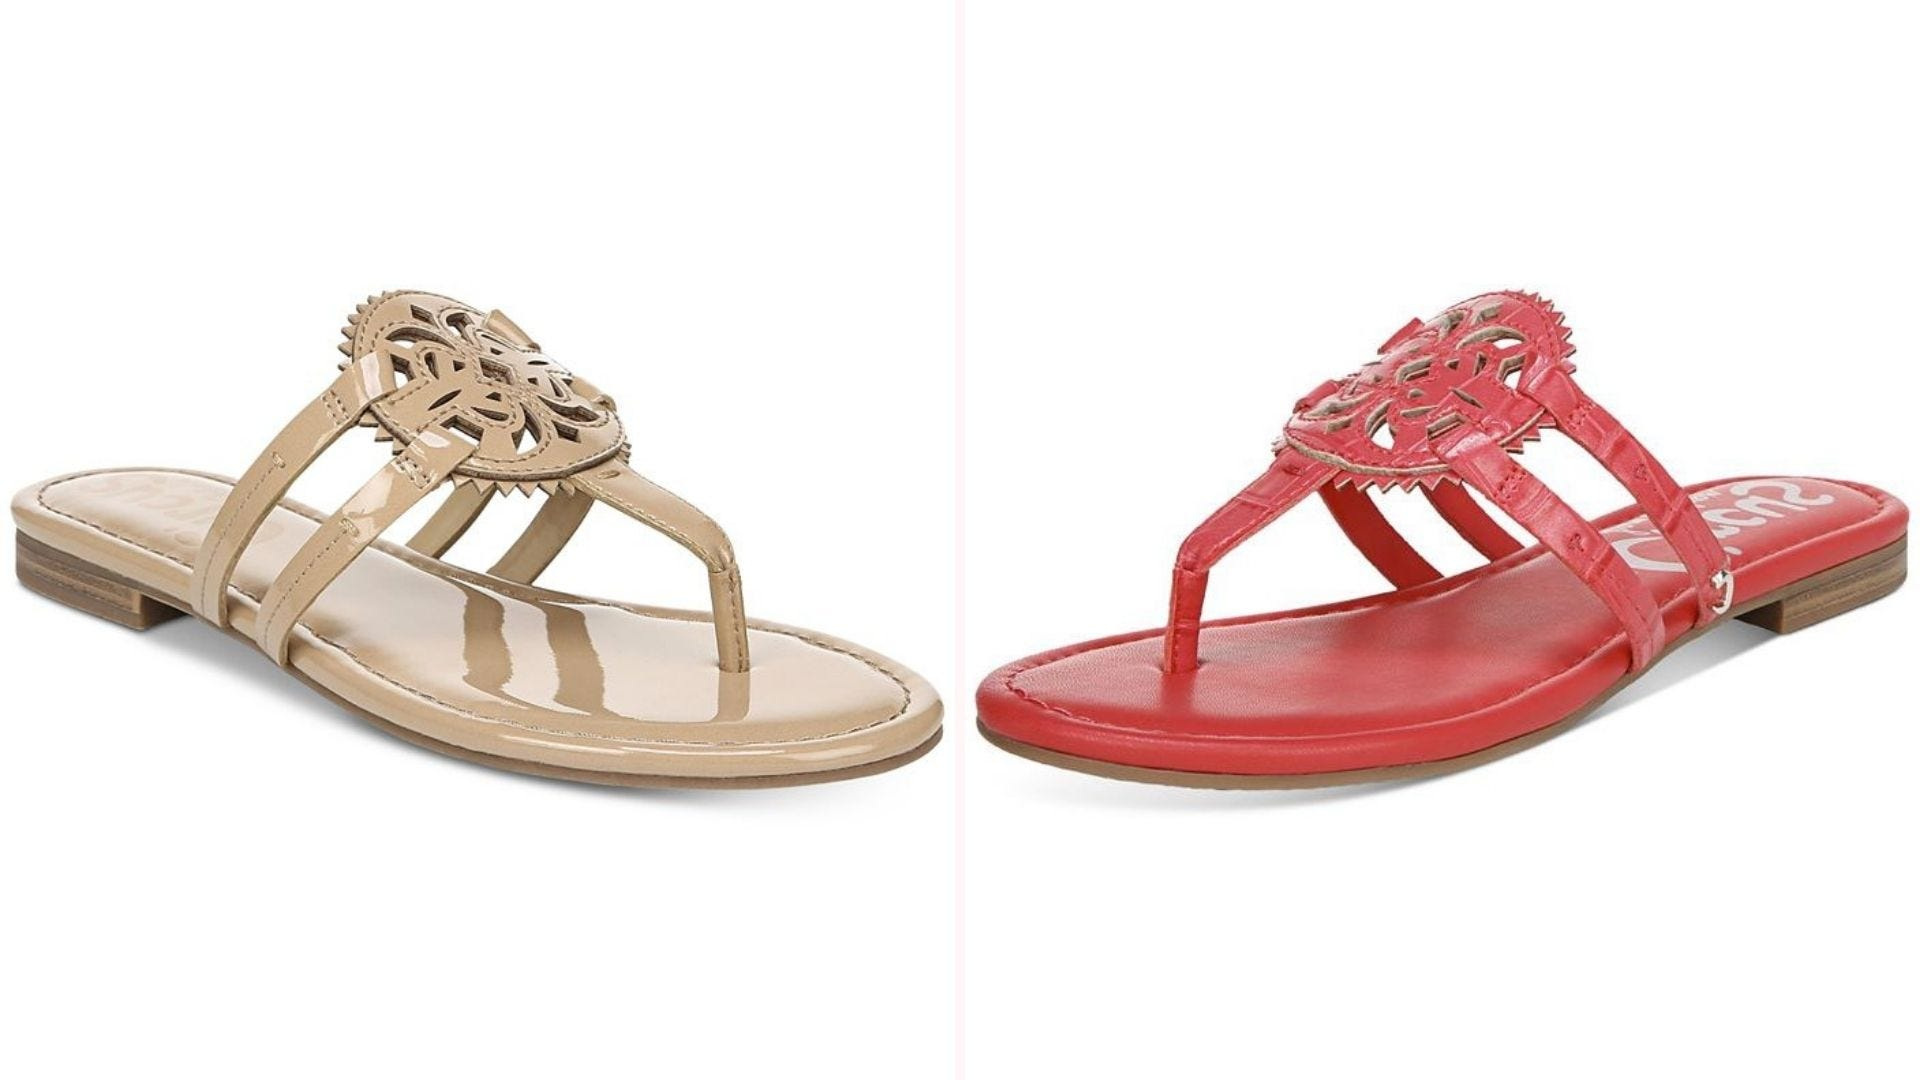 Two patent leather sandals with a medallion design, one beige and one coral colored